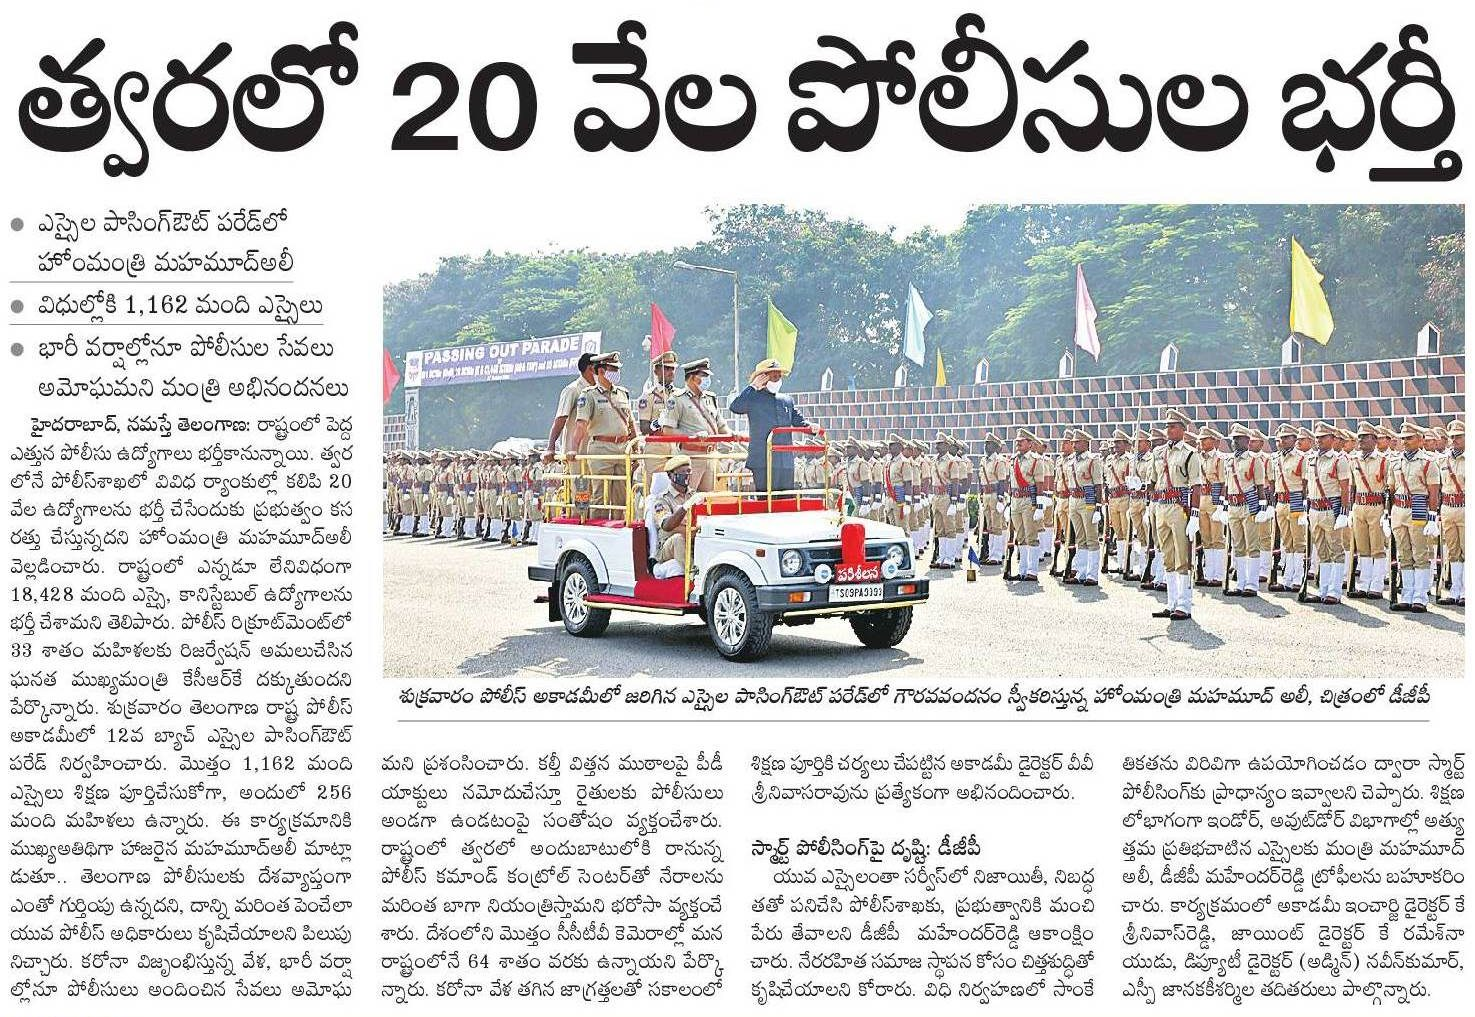 Telangana Police 20000 Posts Recruitment 2020 Full Details